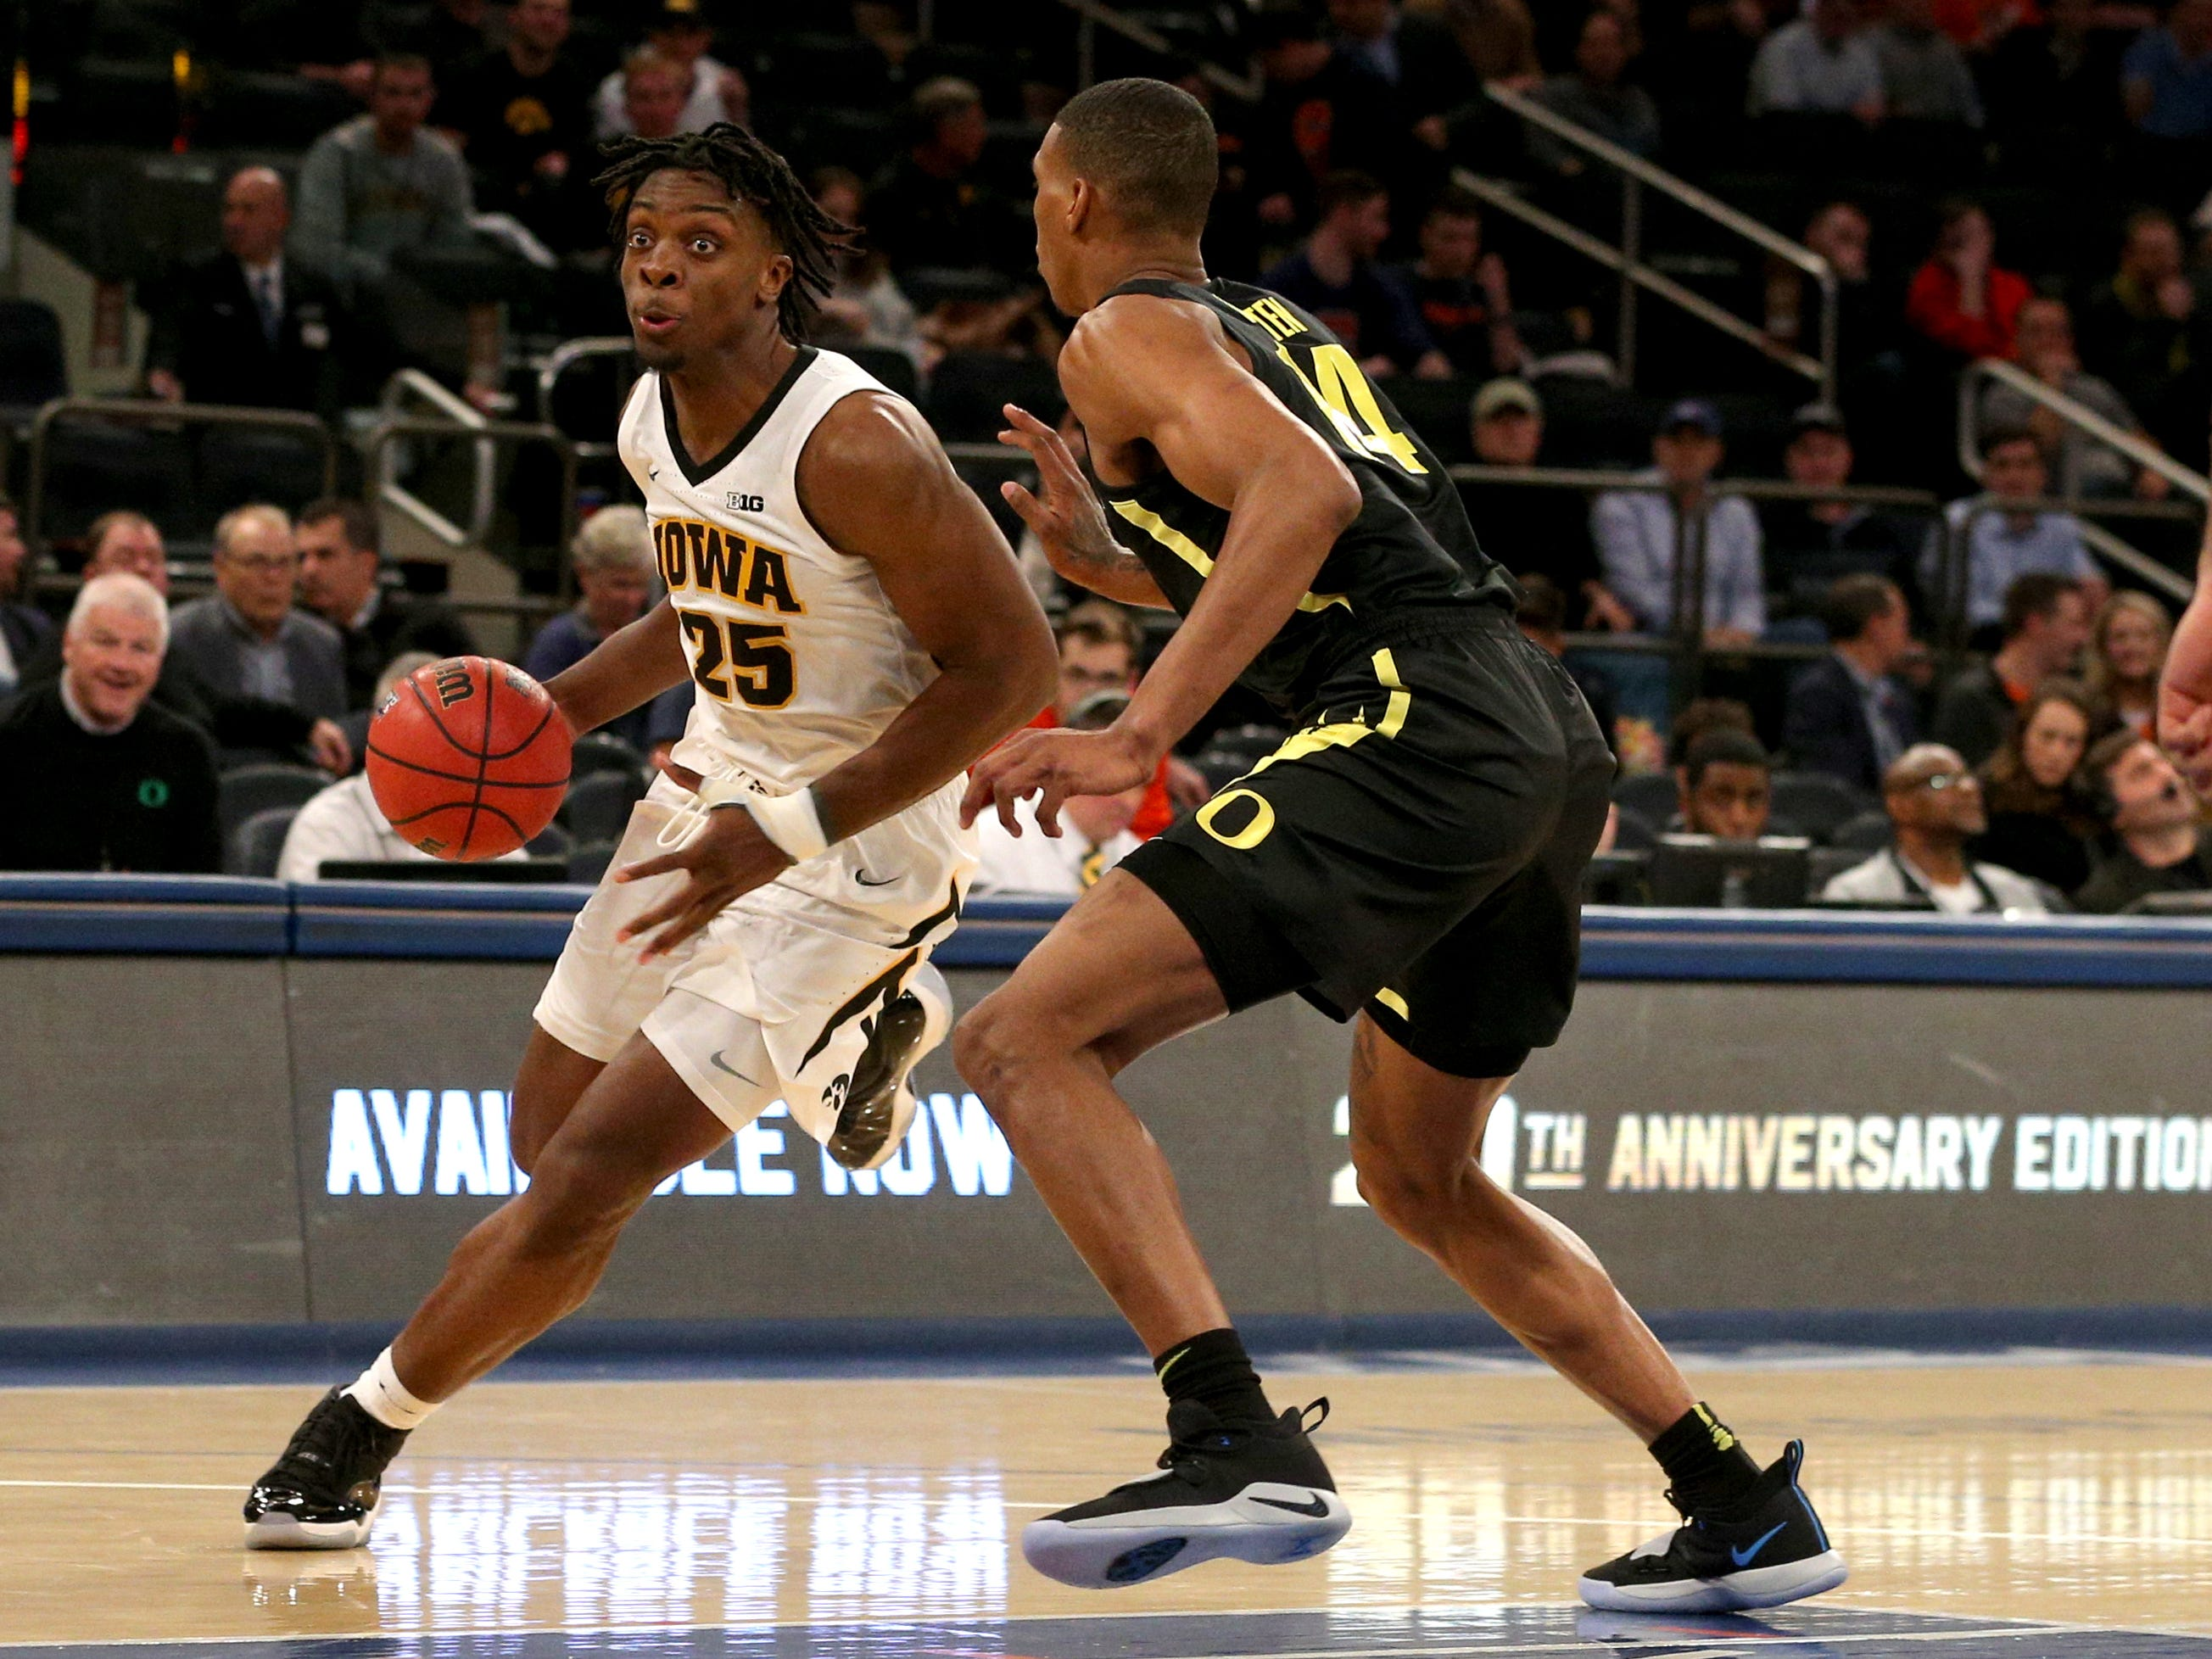 Nov 15, 2018; New York, NY, USA; Iowa Hawkeyes forward Tyler Cook (25) drives the ball past Oregon Ducks forward Kenny Wooten (14) during the first half at Madison Square Garden.